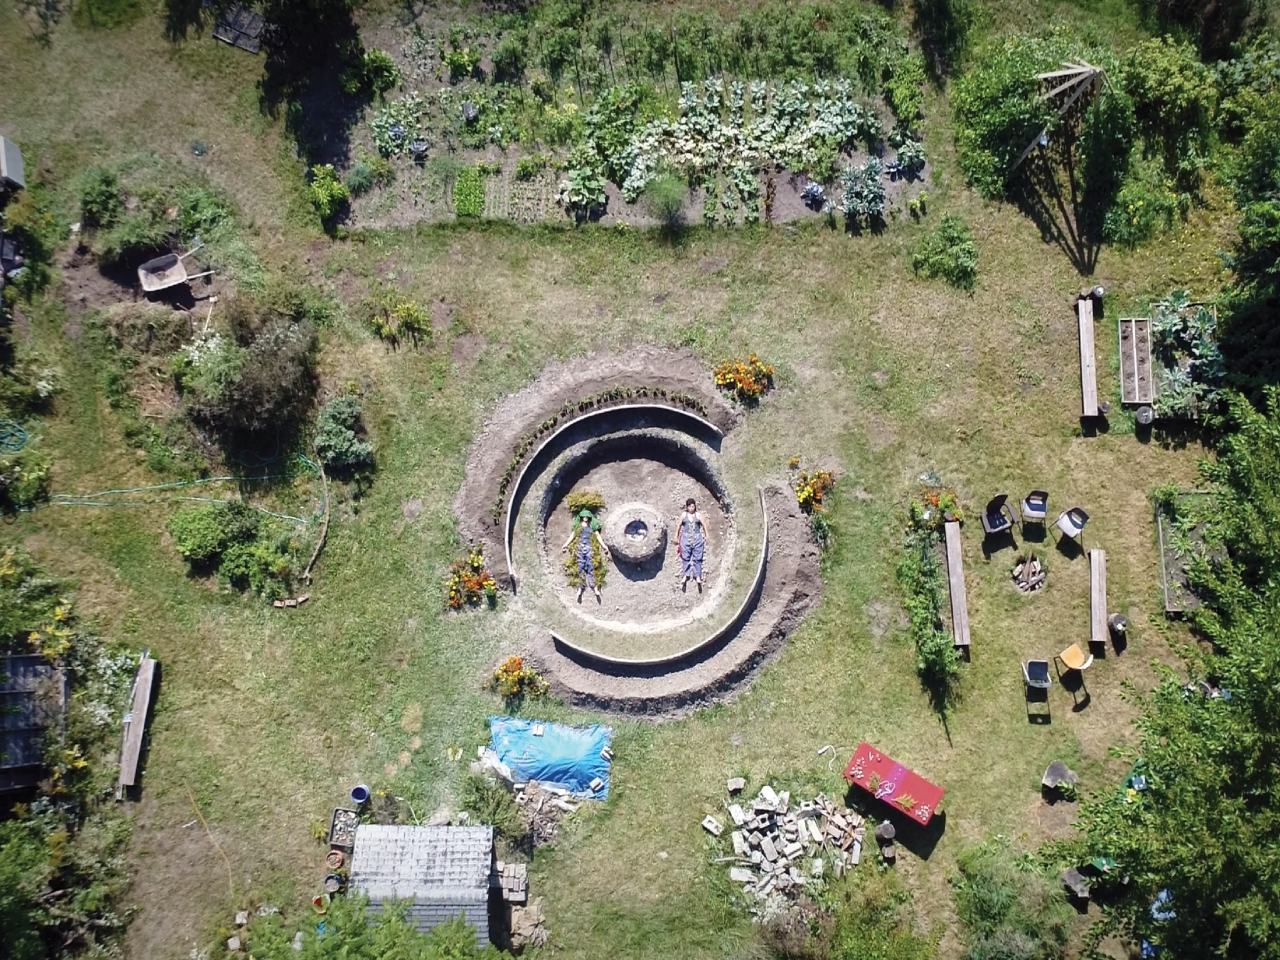 A drone photograph looking directly down on a scene of a garden/park. There is a central circle that has been dug out of the earth. There are two bodies laying in the raw earth circle. Around the circle there are vegetable garden beds, a shed roof, bricks strewn in a pile, a blue tarp covering a mound, and a circle of chairs and benches.